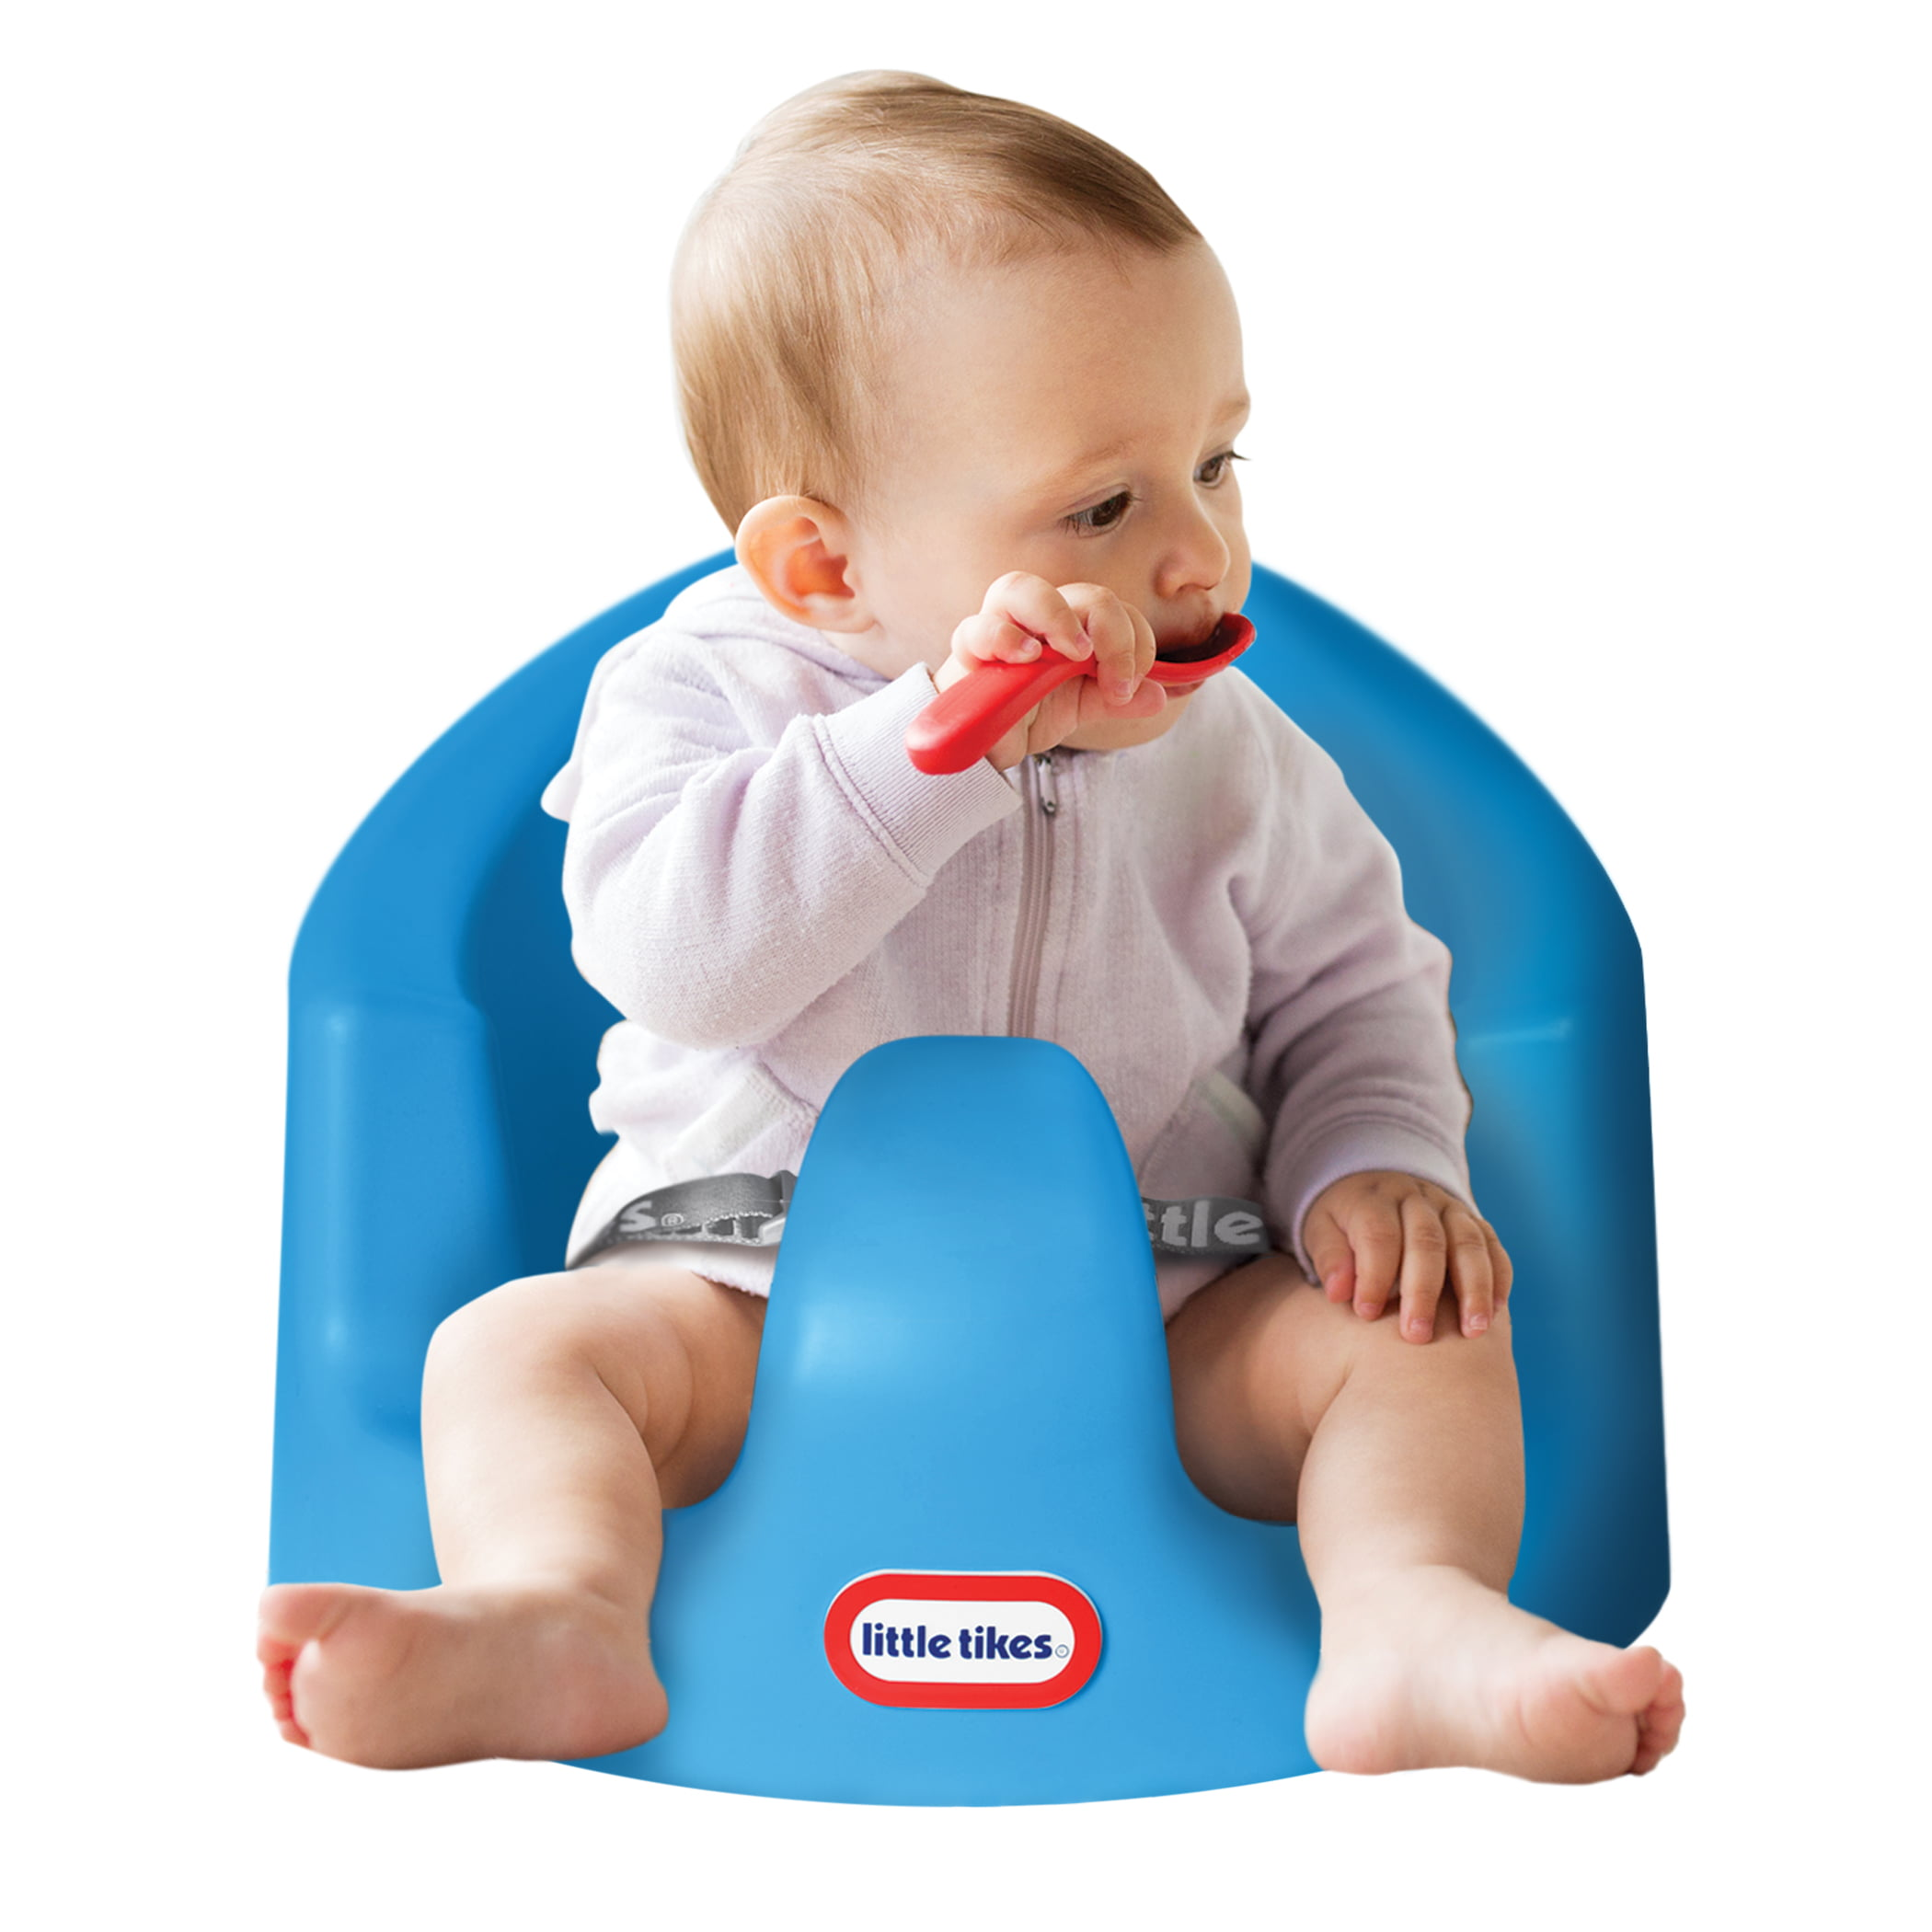 Little Tikes My First Seat, Baby Foam Floor Support Seat ...